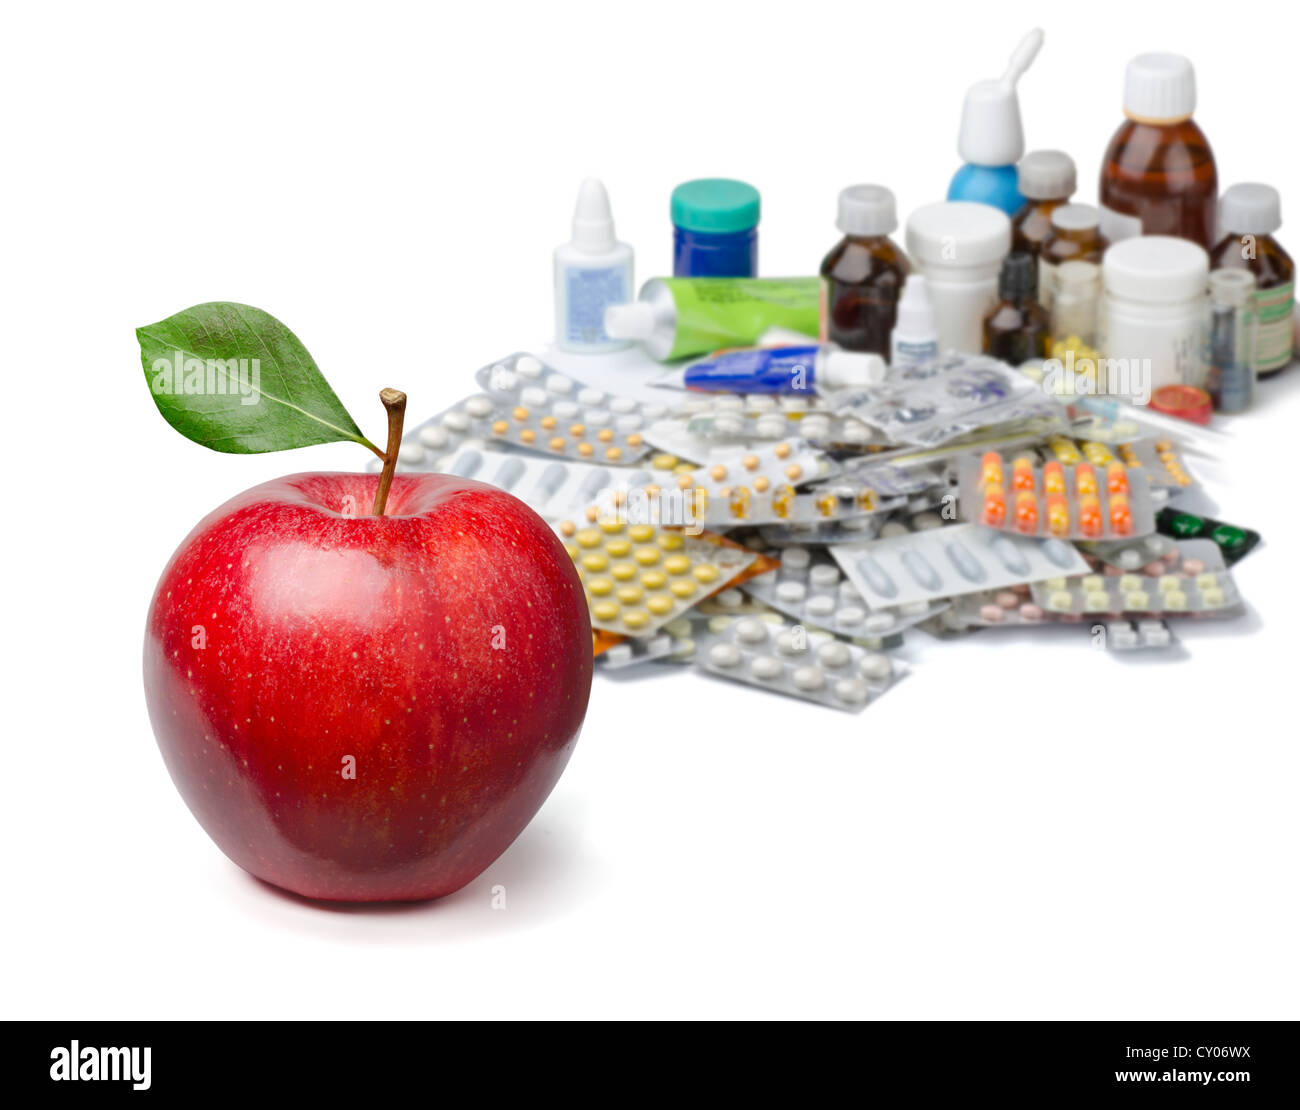 Red apple in front of a large pile of medicines. Healthy lifestyle concept. - Stock Image